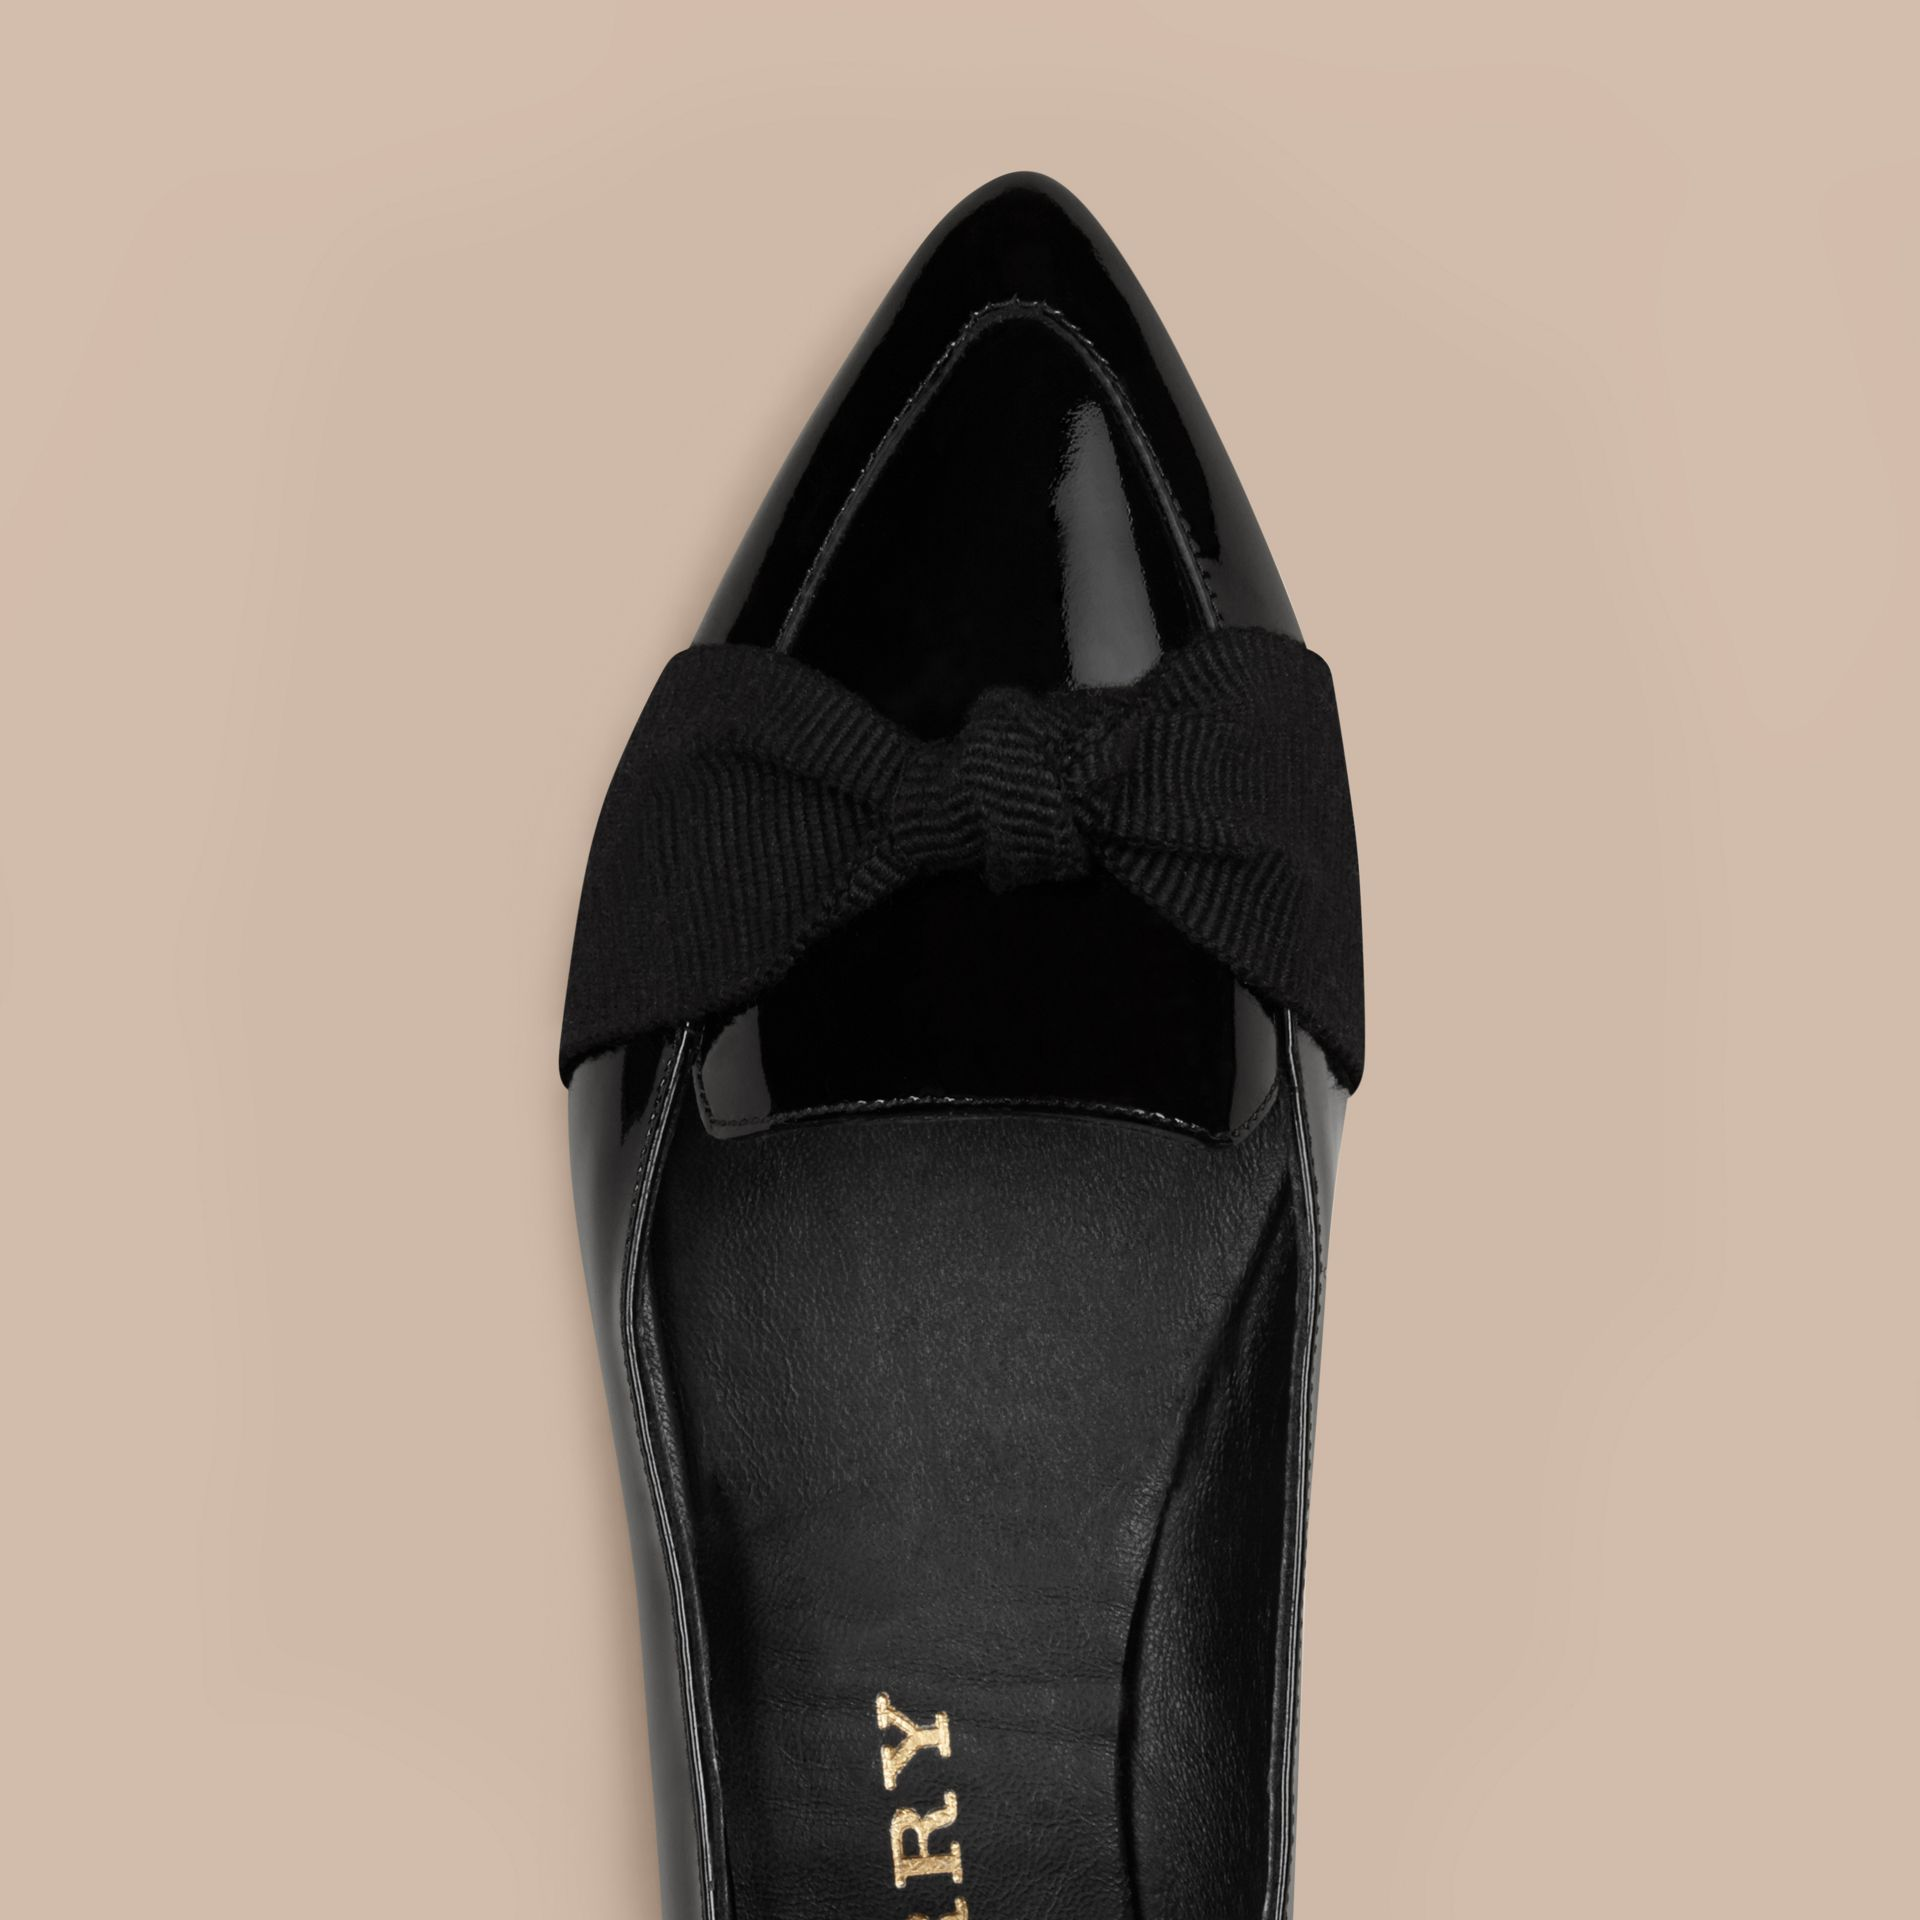 Black Patent Leather Loafers with Grosgrain Bow Black - gallery image 5